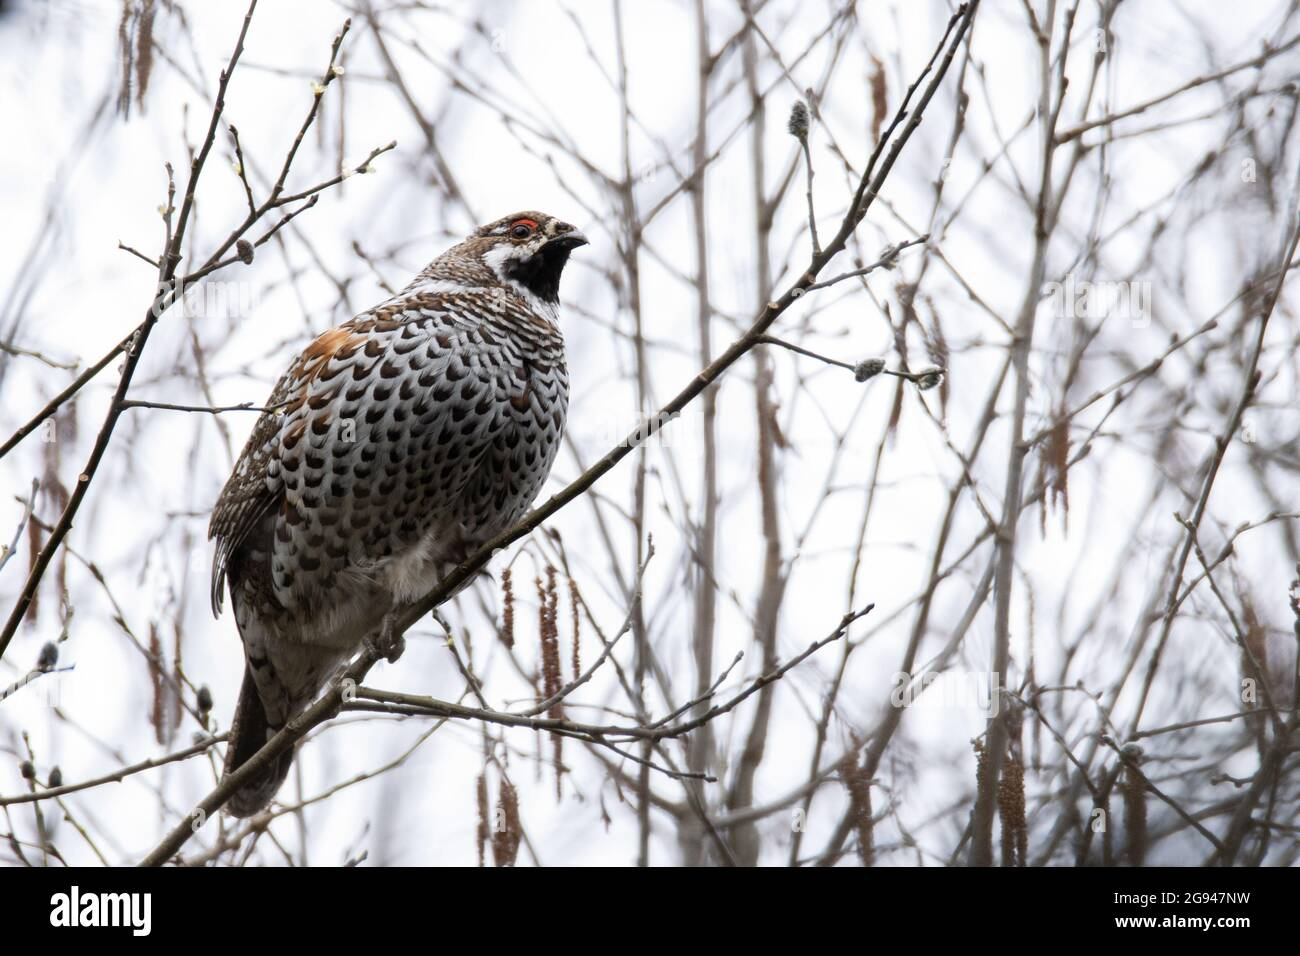 Male Hazel grouse, Tetrastes bonasia perched on a Willow branch in Estonian forest. Stock Photo